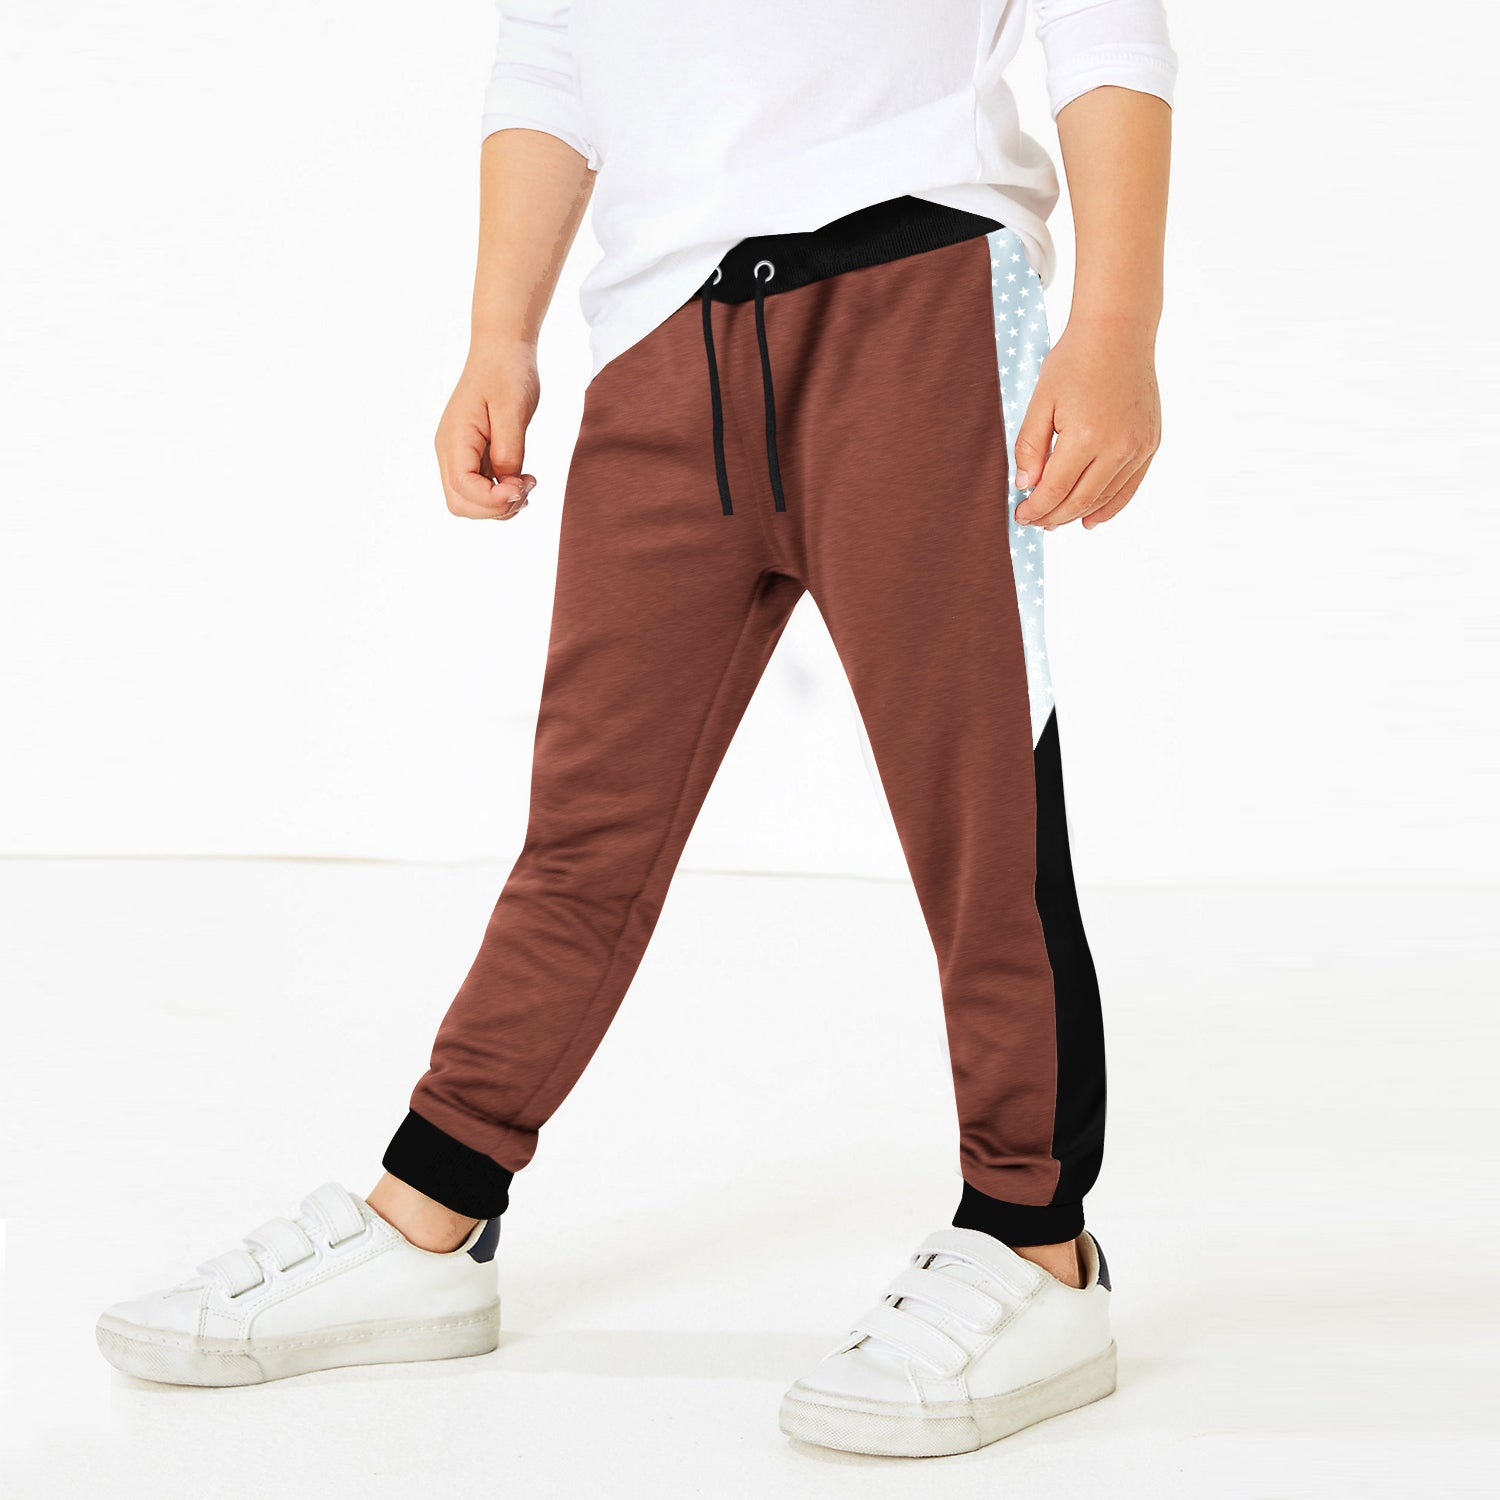 Uneek Single Jersey Jogger Trouser For Boys-Burnt Umber Melange with Black & Stars Panel-BE10203